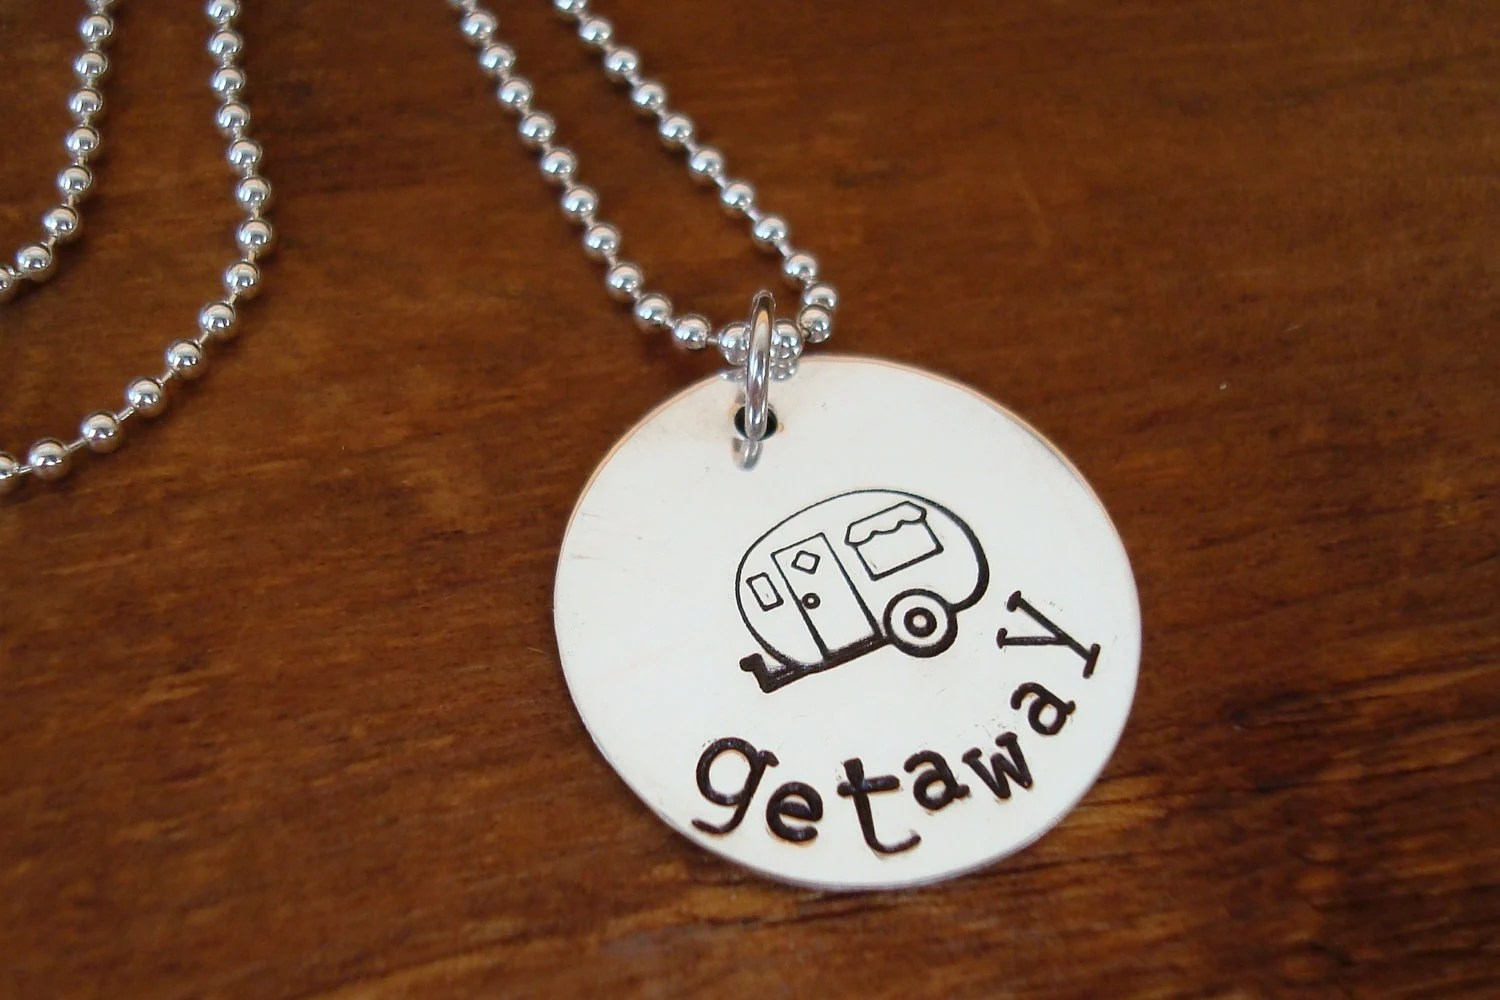 Camper Necklace - Getaway - Airstream - Hand stamped - Sterling Silver - Travel Trailer - mytweedledee